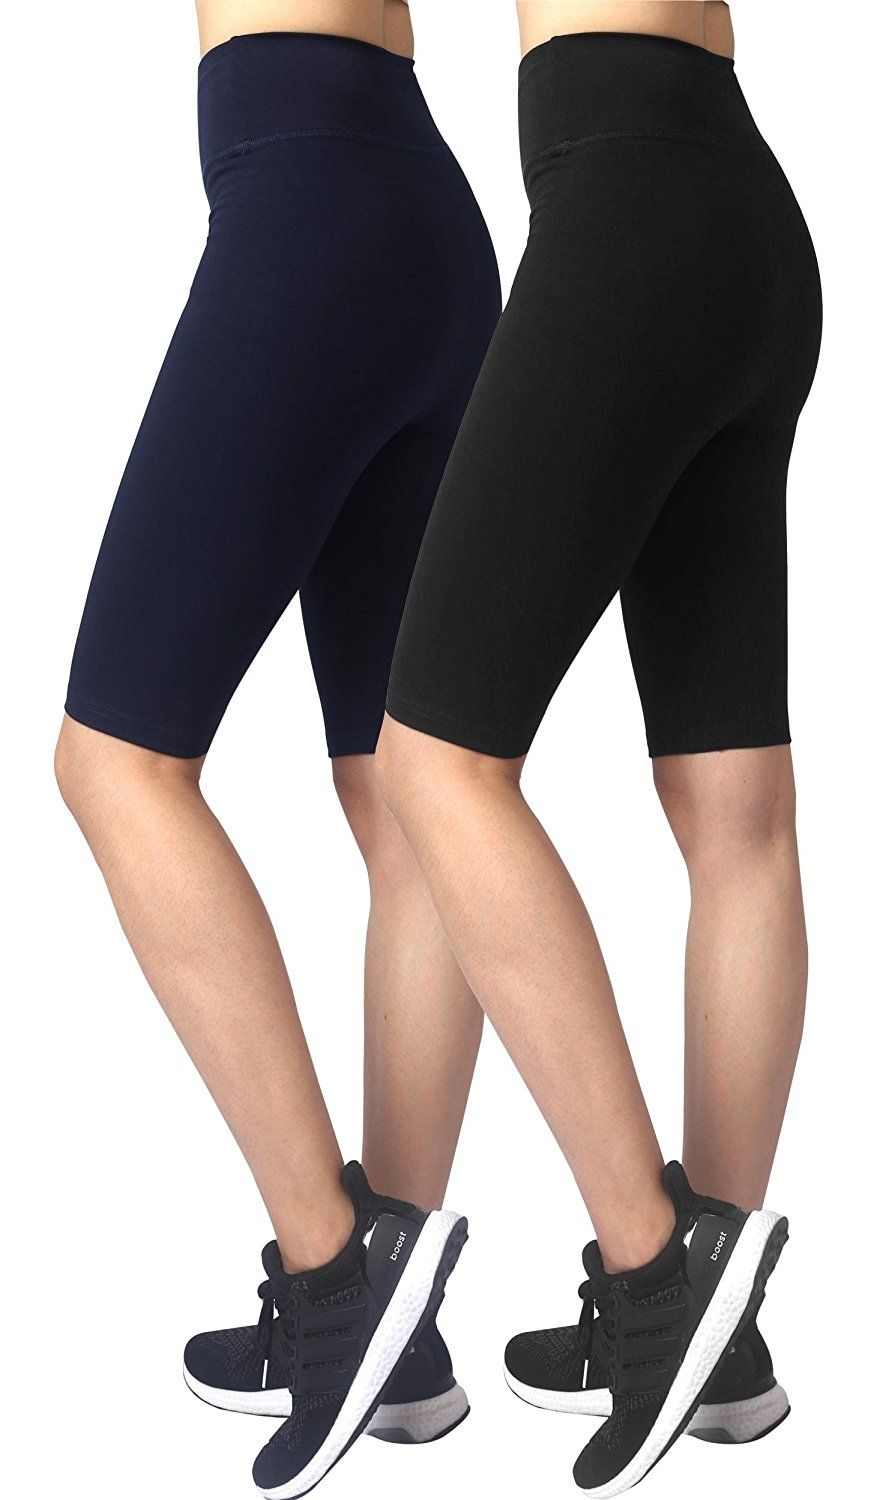 da8ce242c7 Neonysweets Womens Active Workout Tights Yoga Short Cotton Half Tights  Price: $7.99